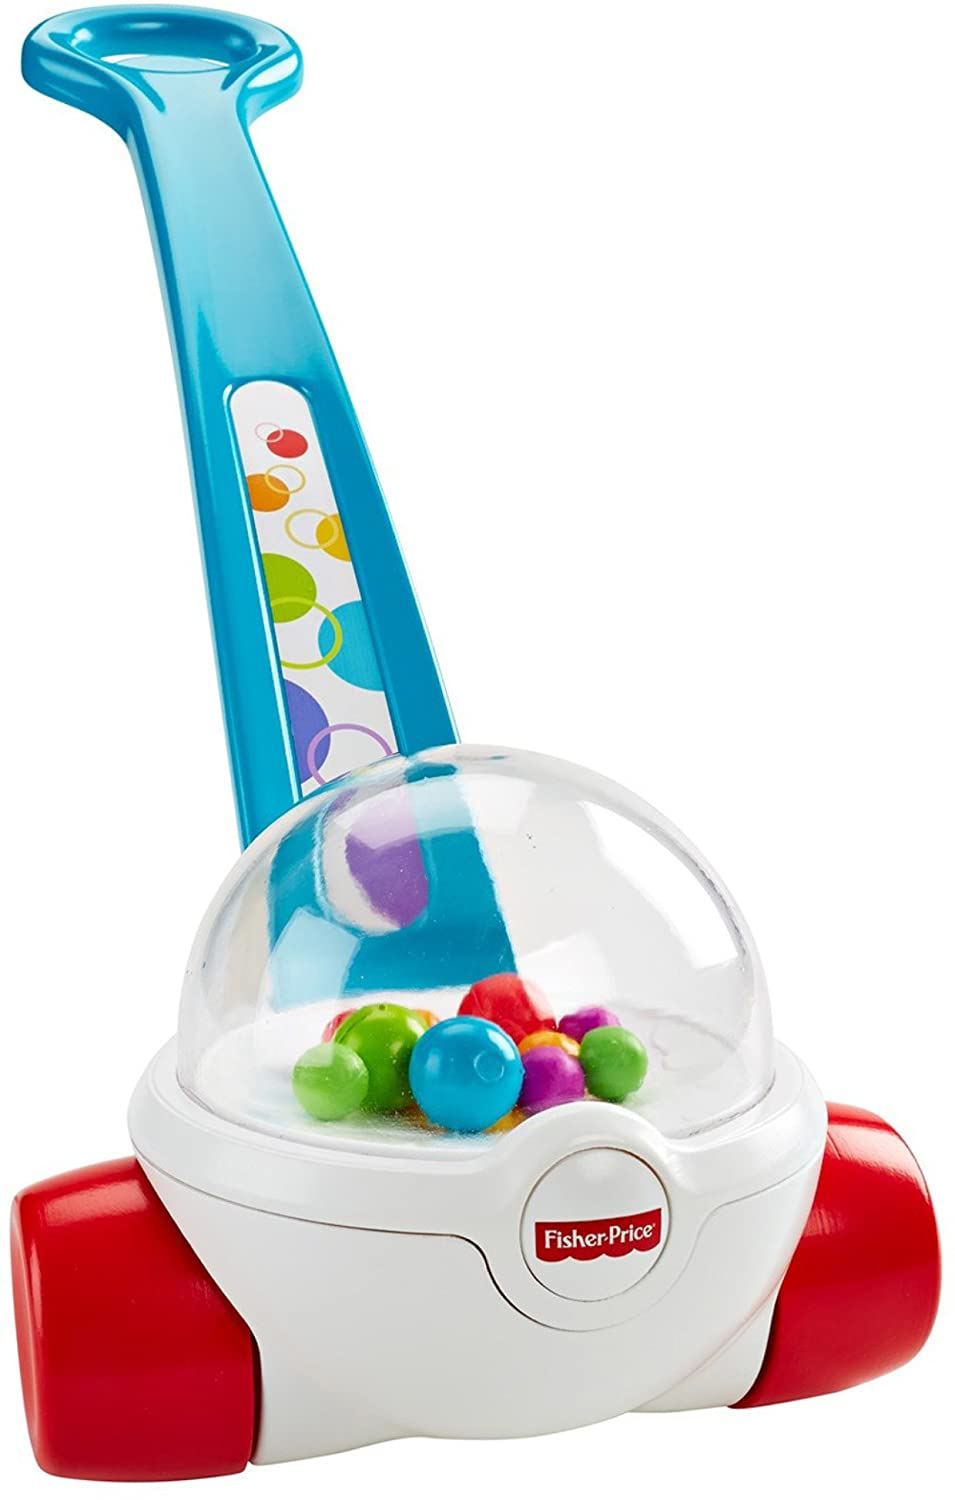 Amazon.com: Fisher-Price Corn Popper Playset, Blue: Kitchen & Dining